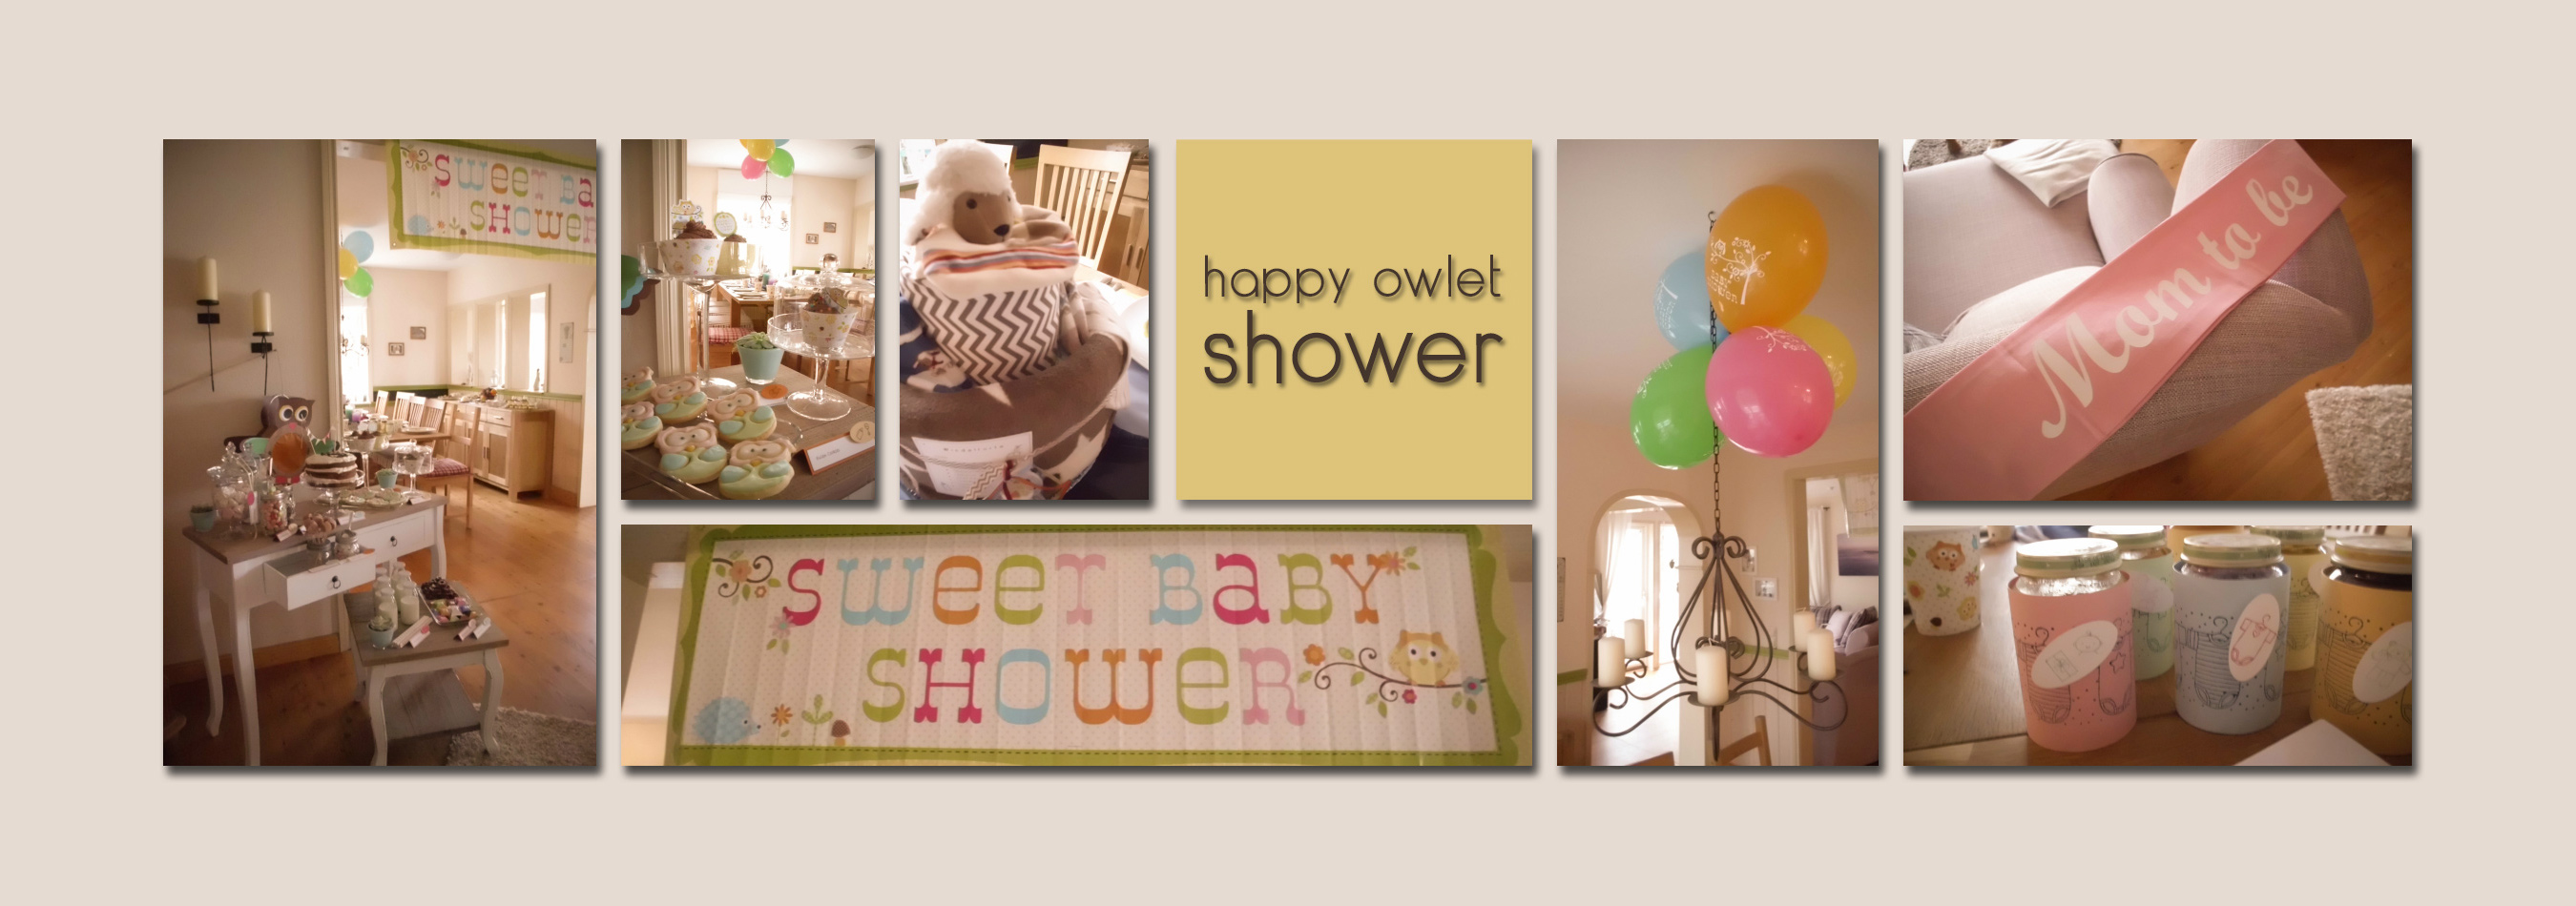 02_happy-owlet-shower.jpg